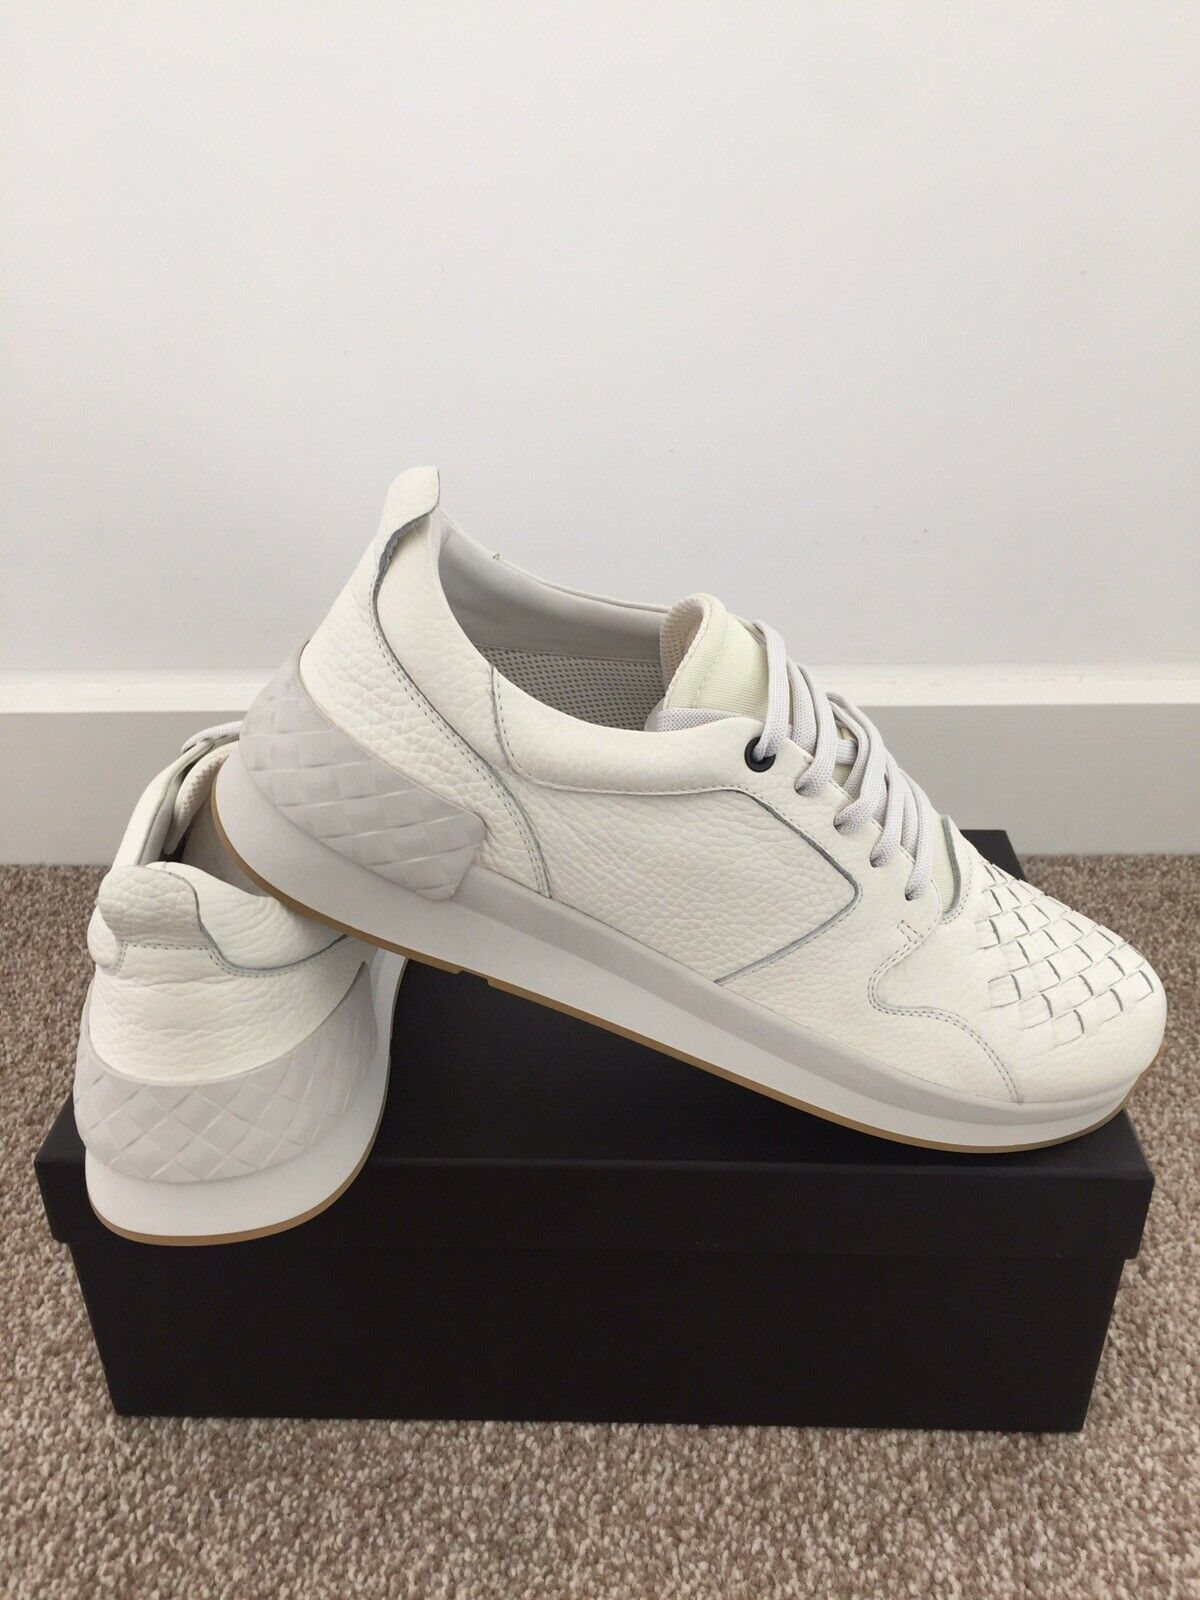 Bottega Veneta Grand Running Sneaker BNWB UK10 (44) RRP  Selling For  NS